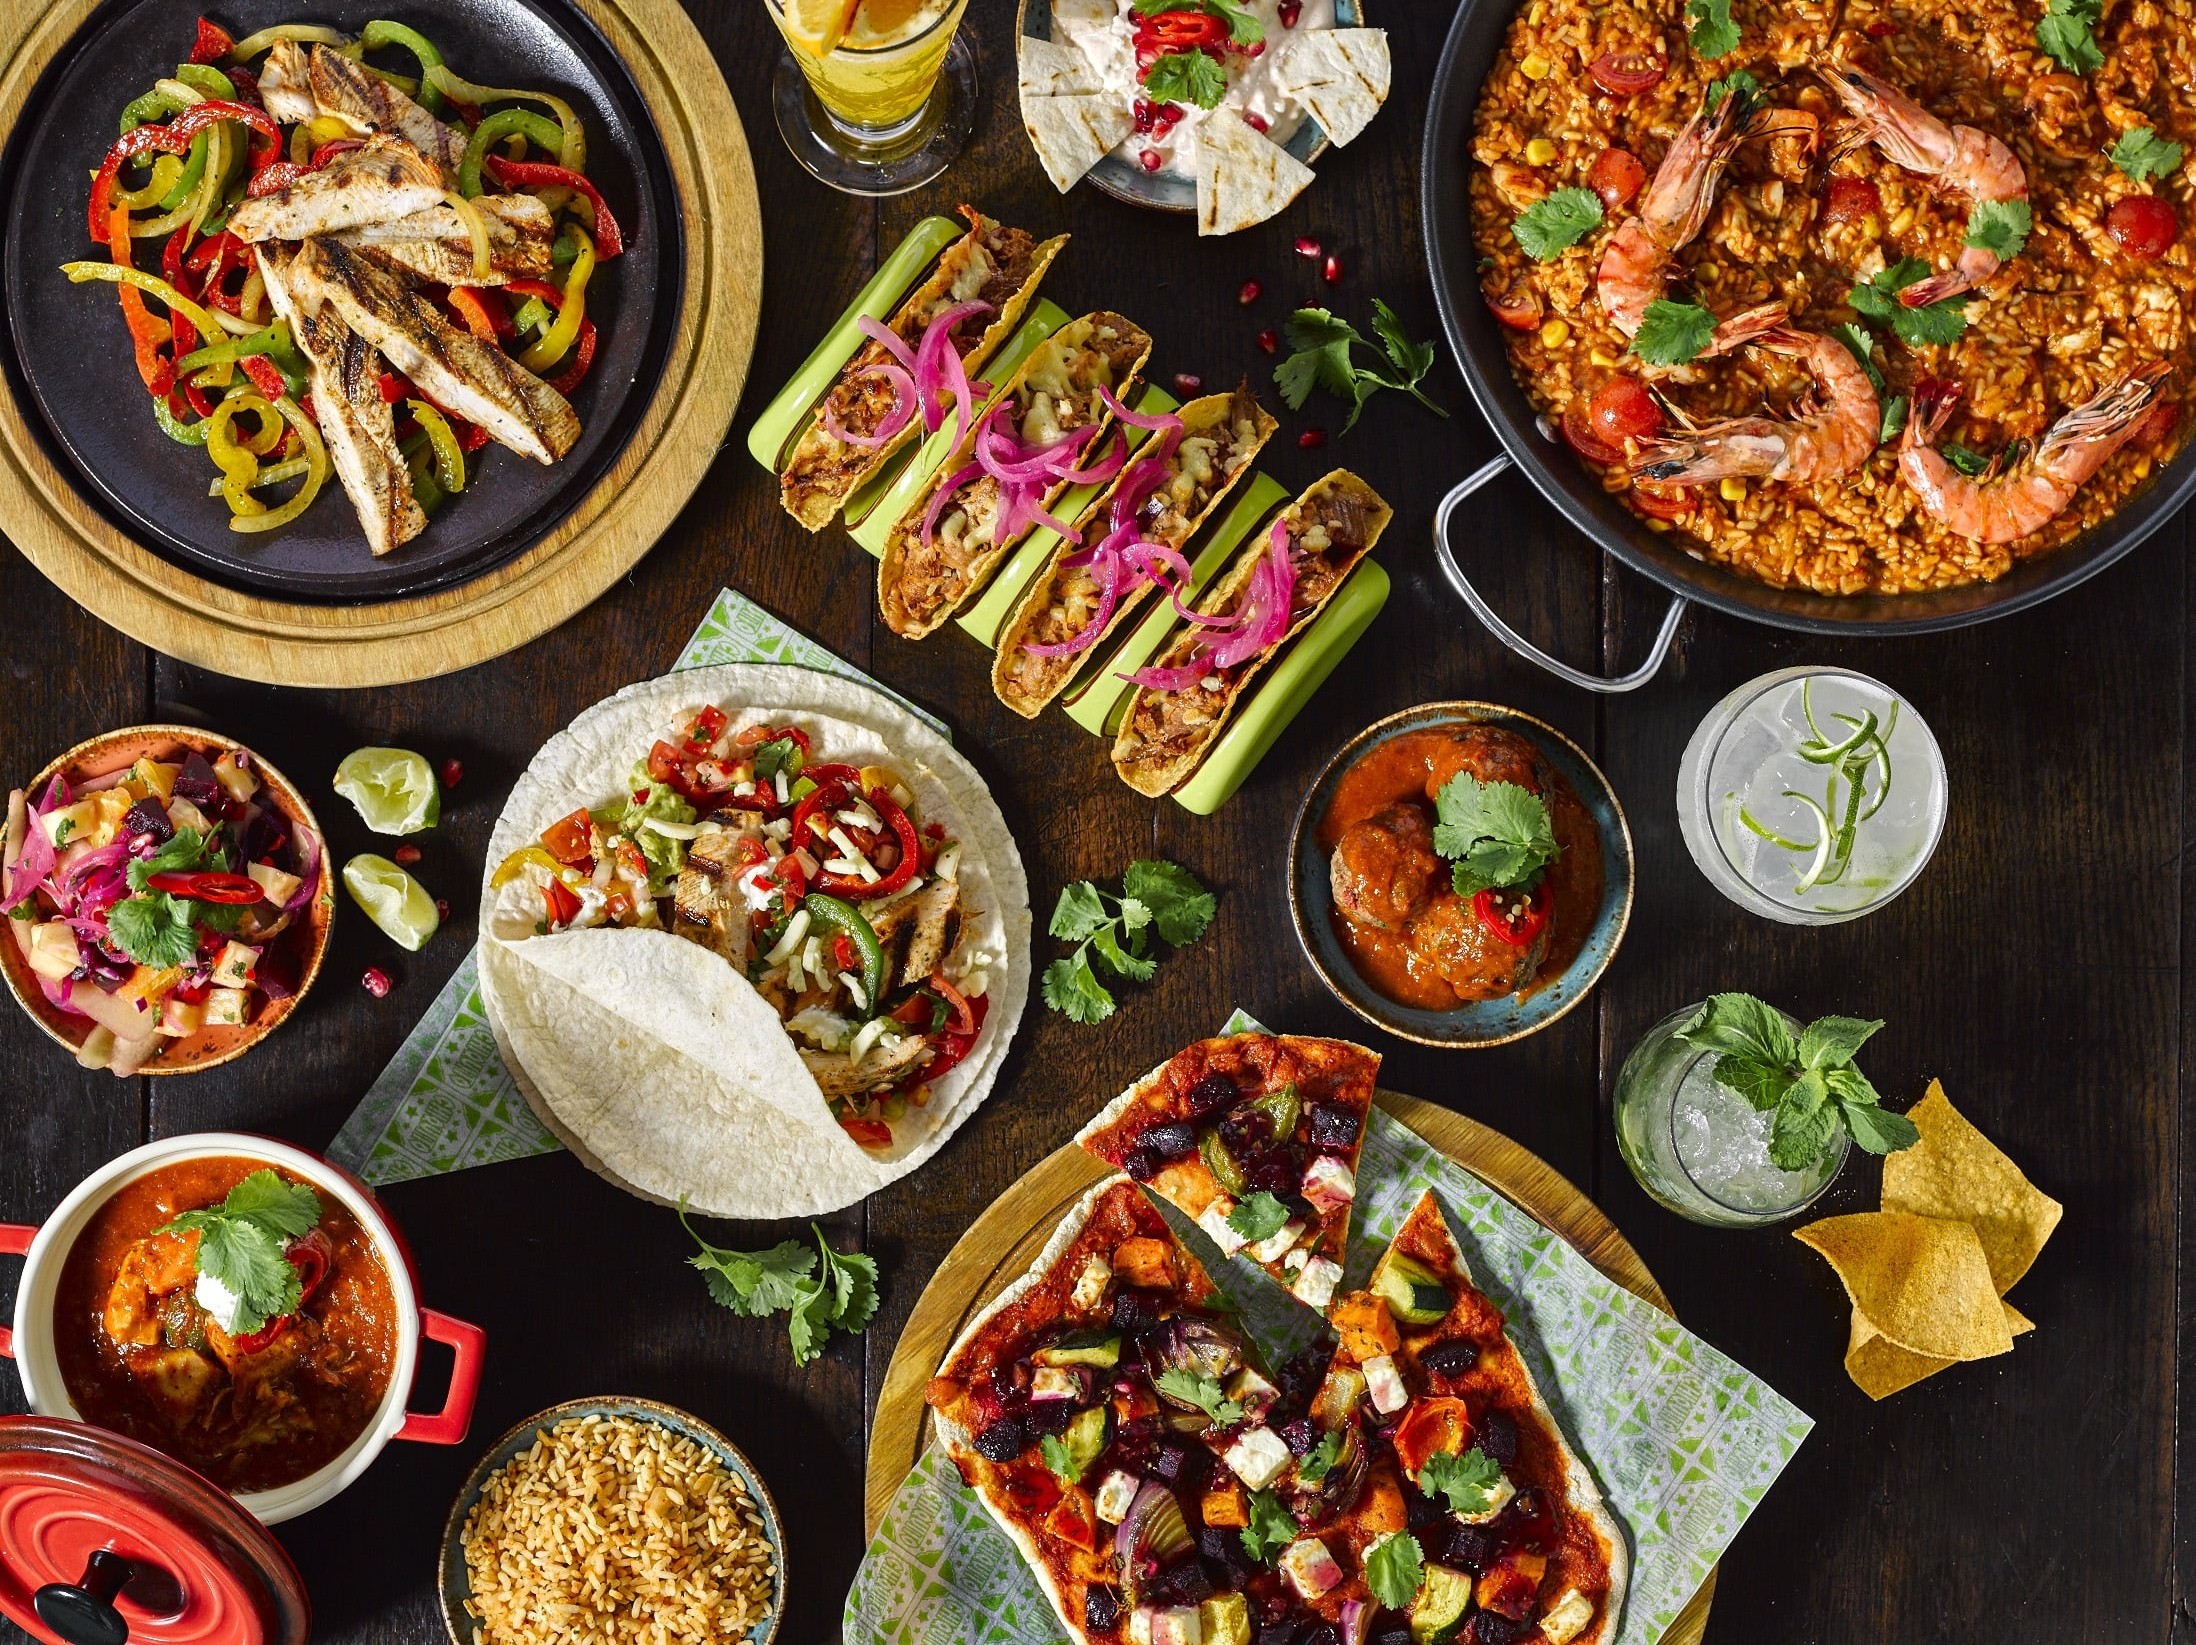 Chiquito - York - Clifton Moor - York